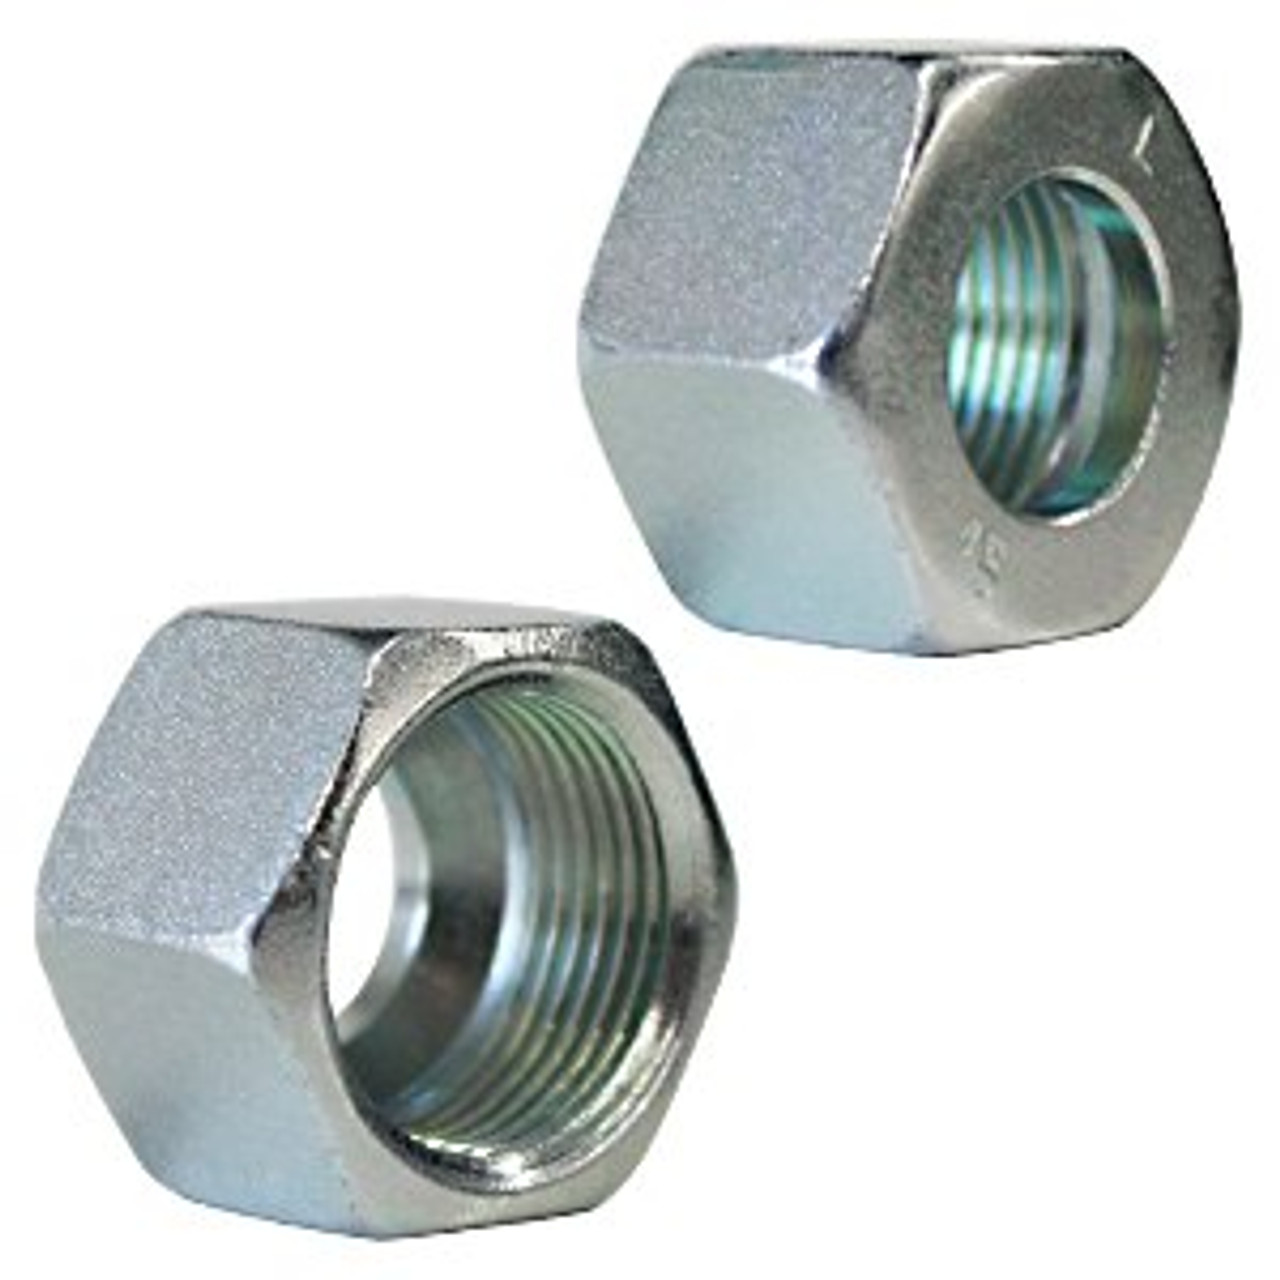 65. SWIVEL NUT M14 X 15